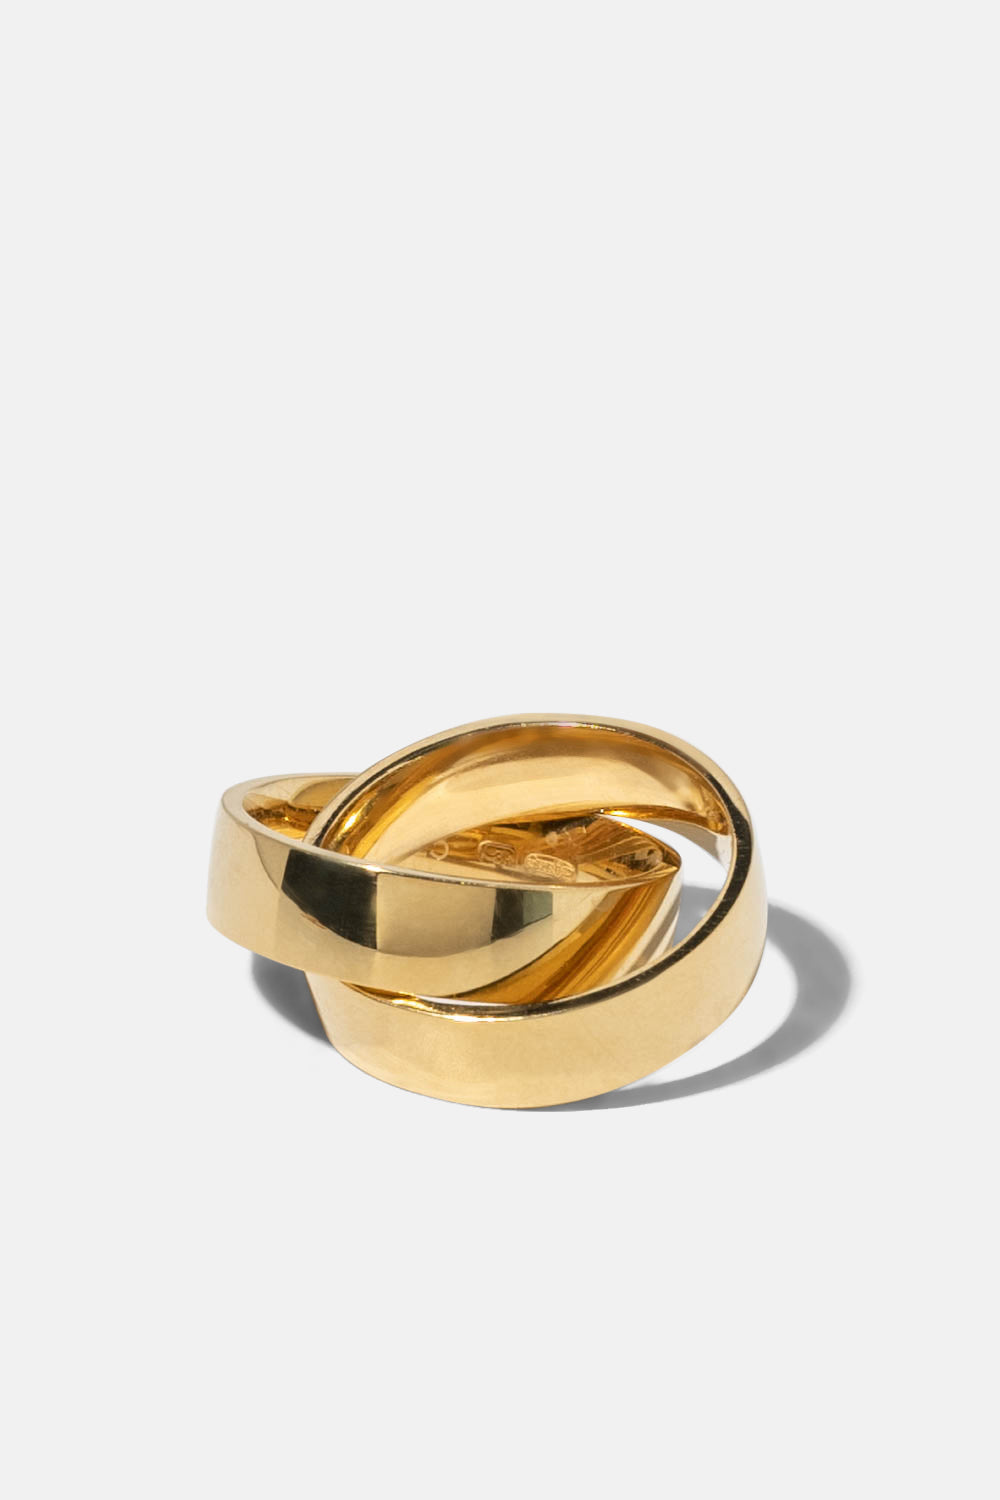 10Y LVK Ring 02 Gold Plated Silver